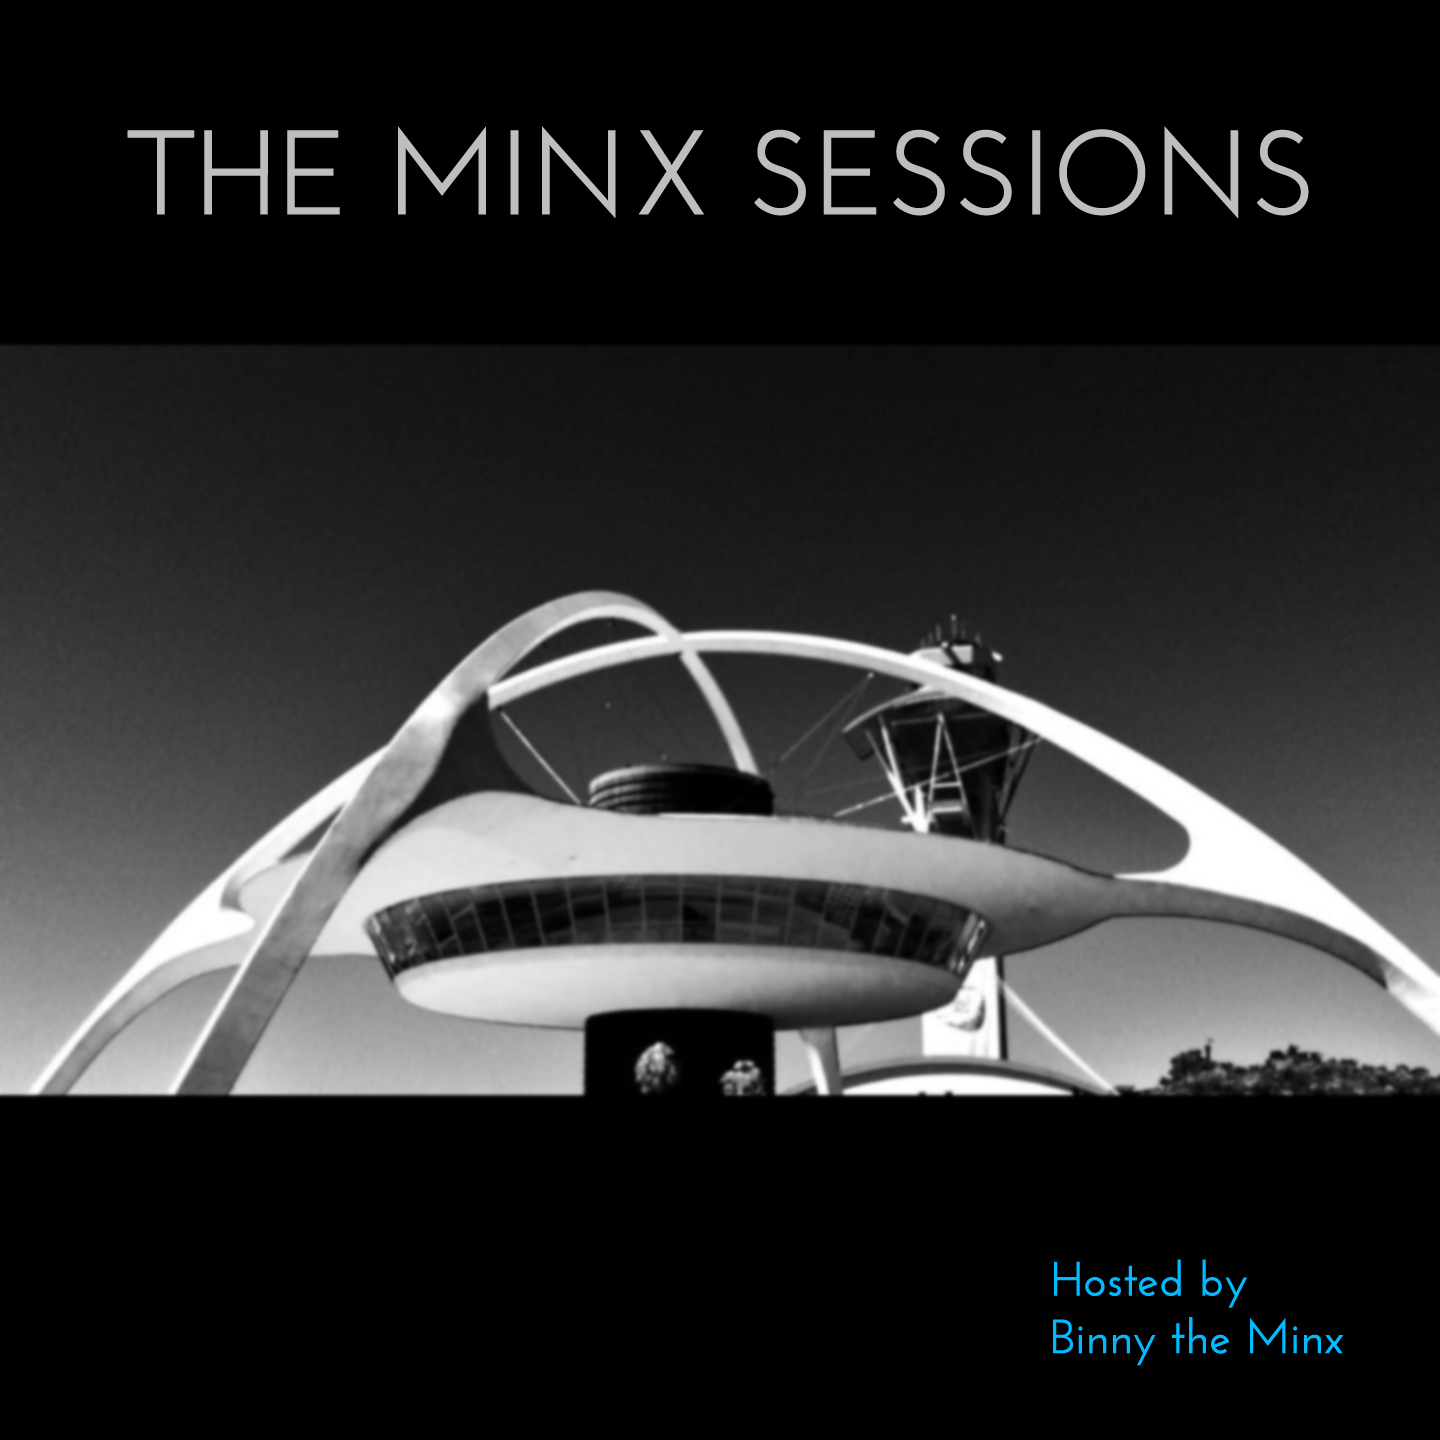 The Minx Sessions